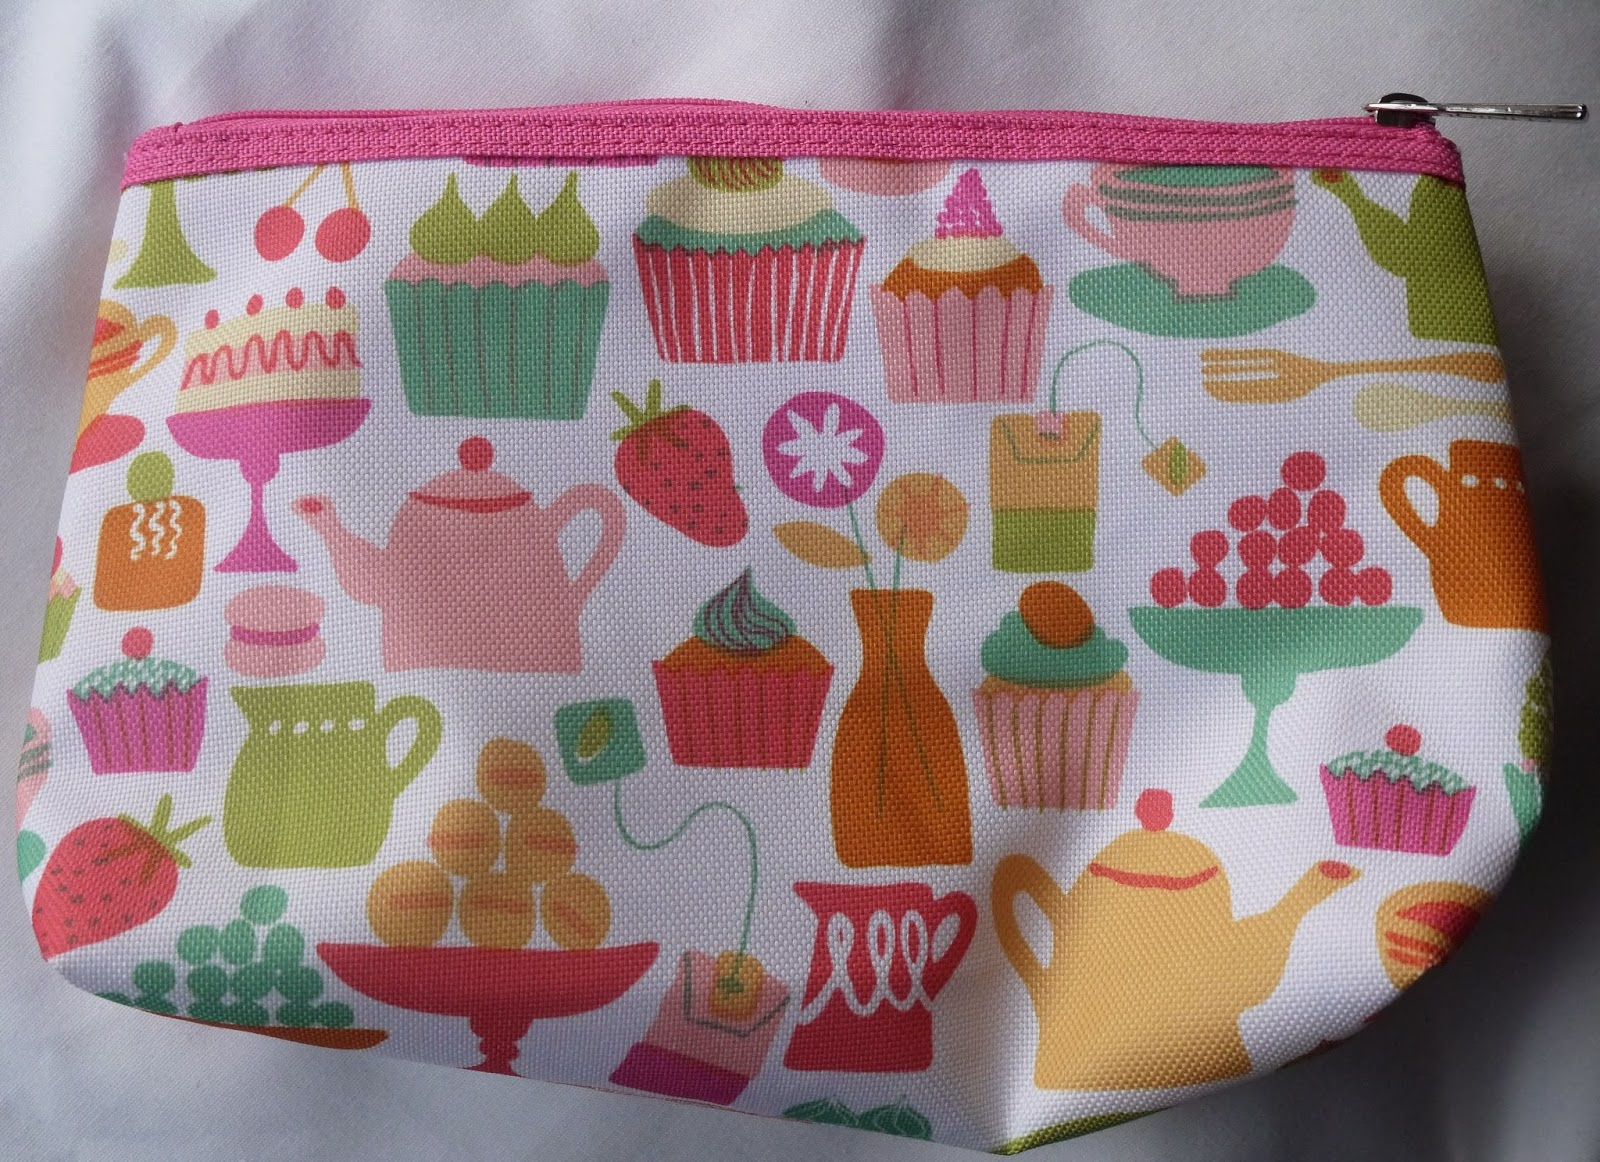 Clinique Fruit and Cake designed colourful Make-Up/Toiletries Bag